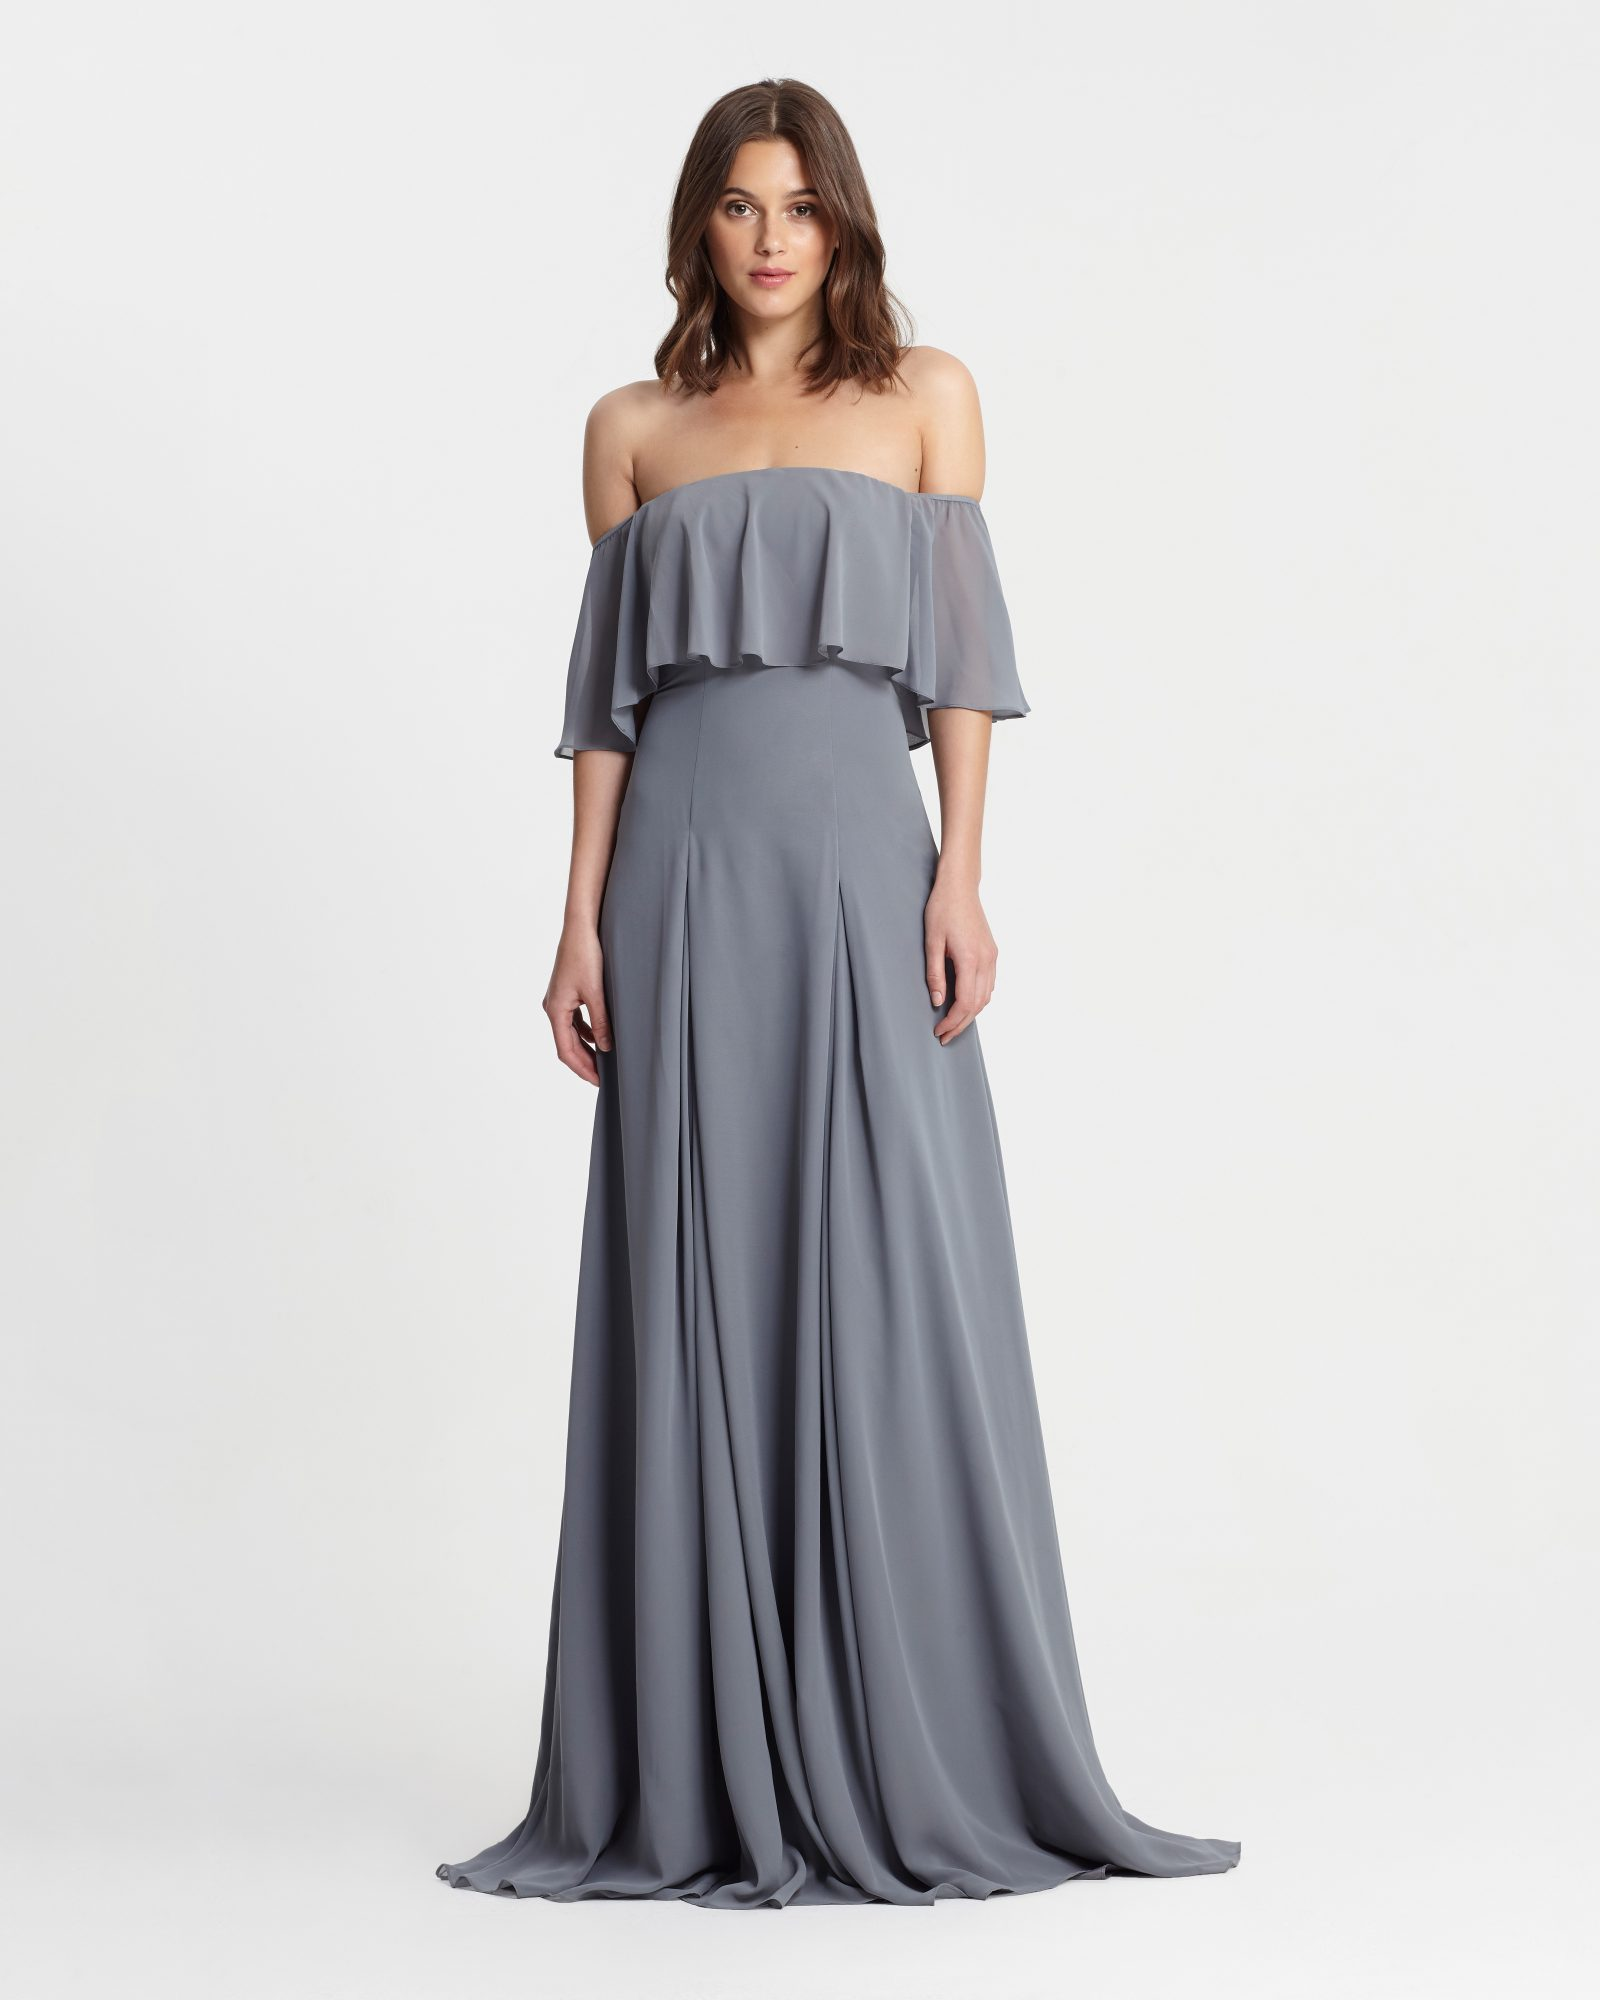 winter bridesmaid dress monique lhuillier off shouler steel